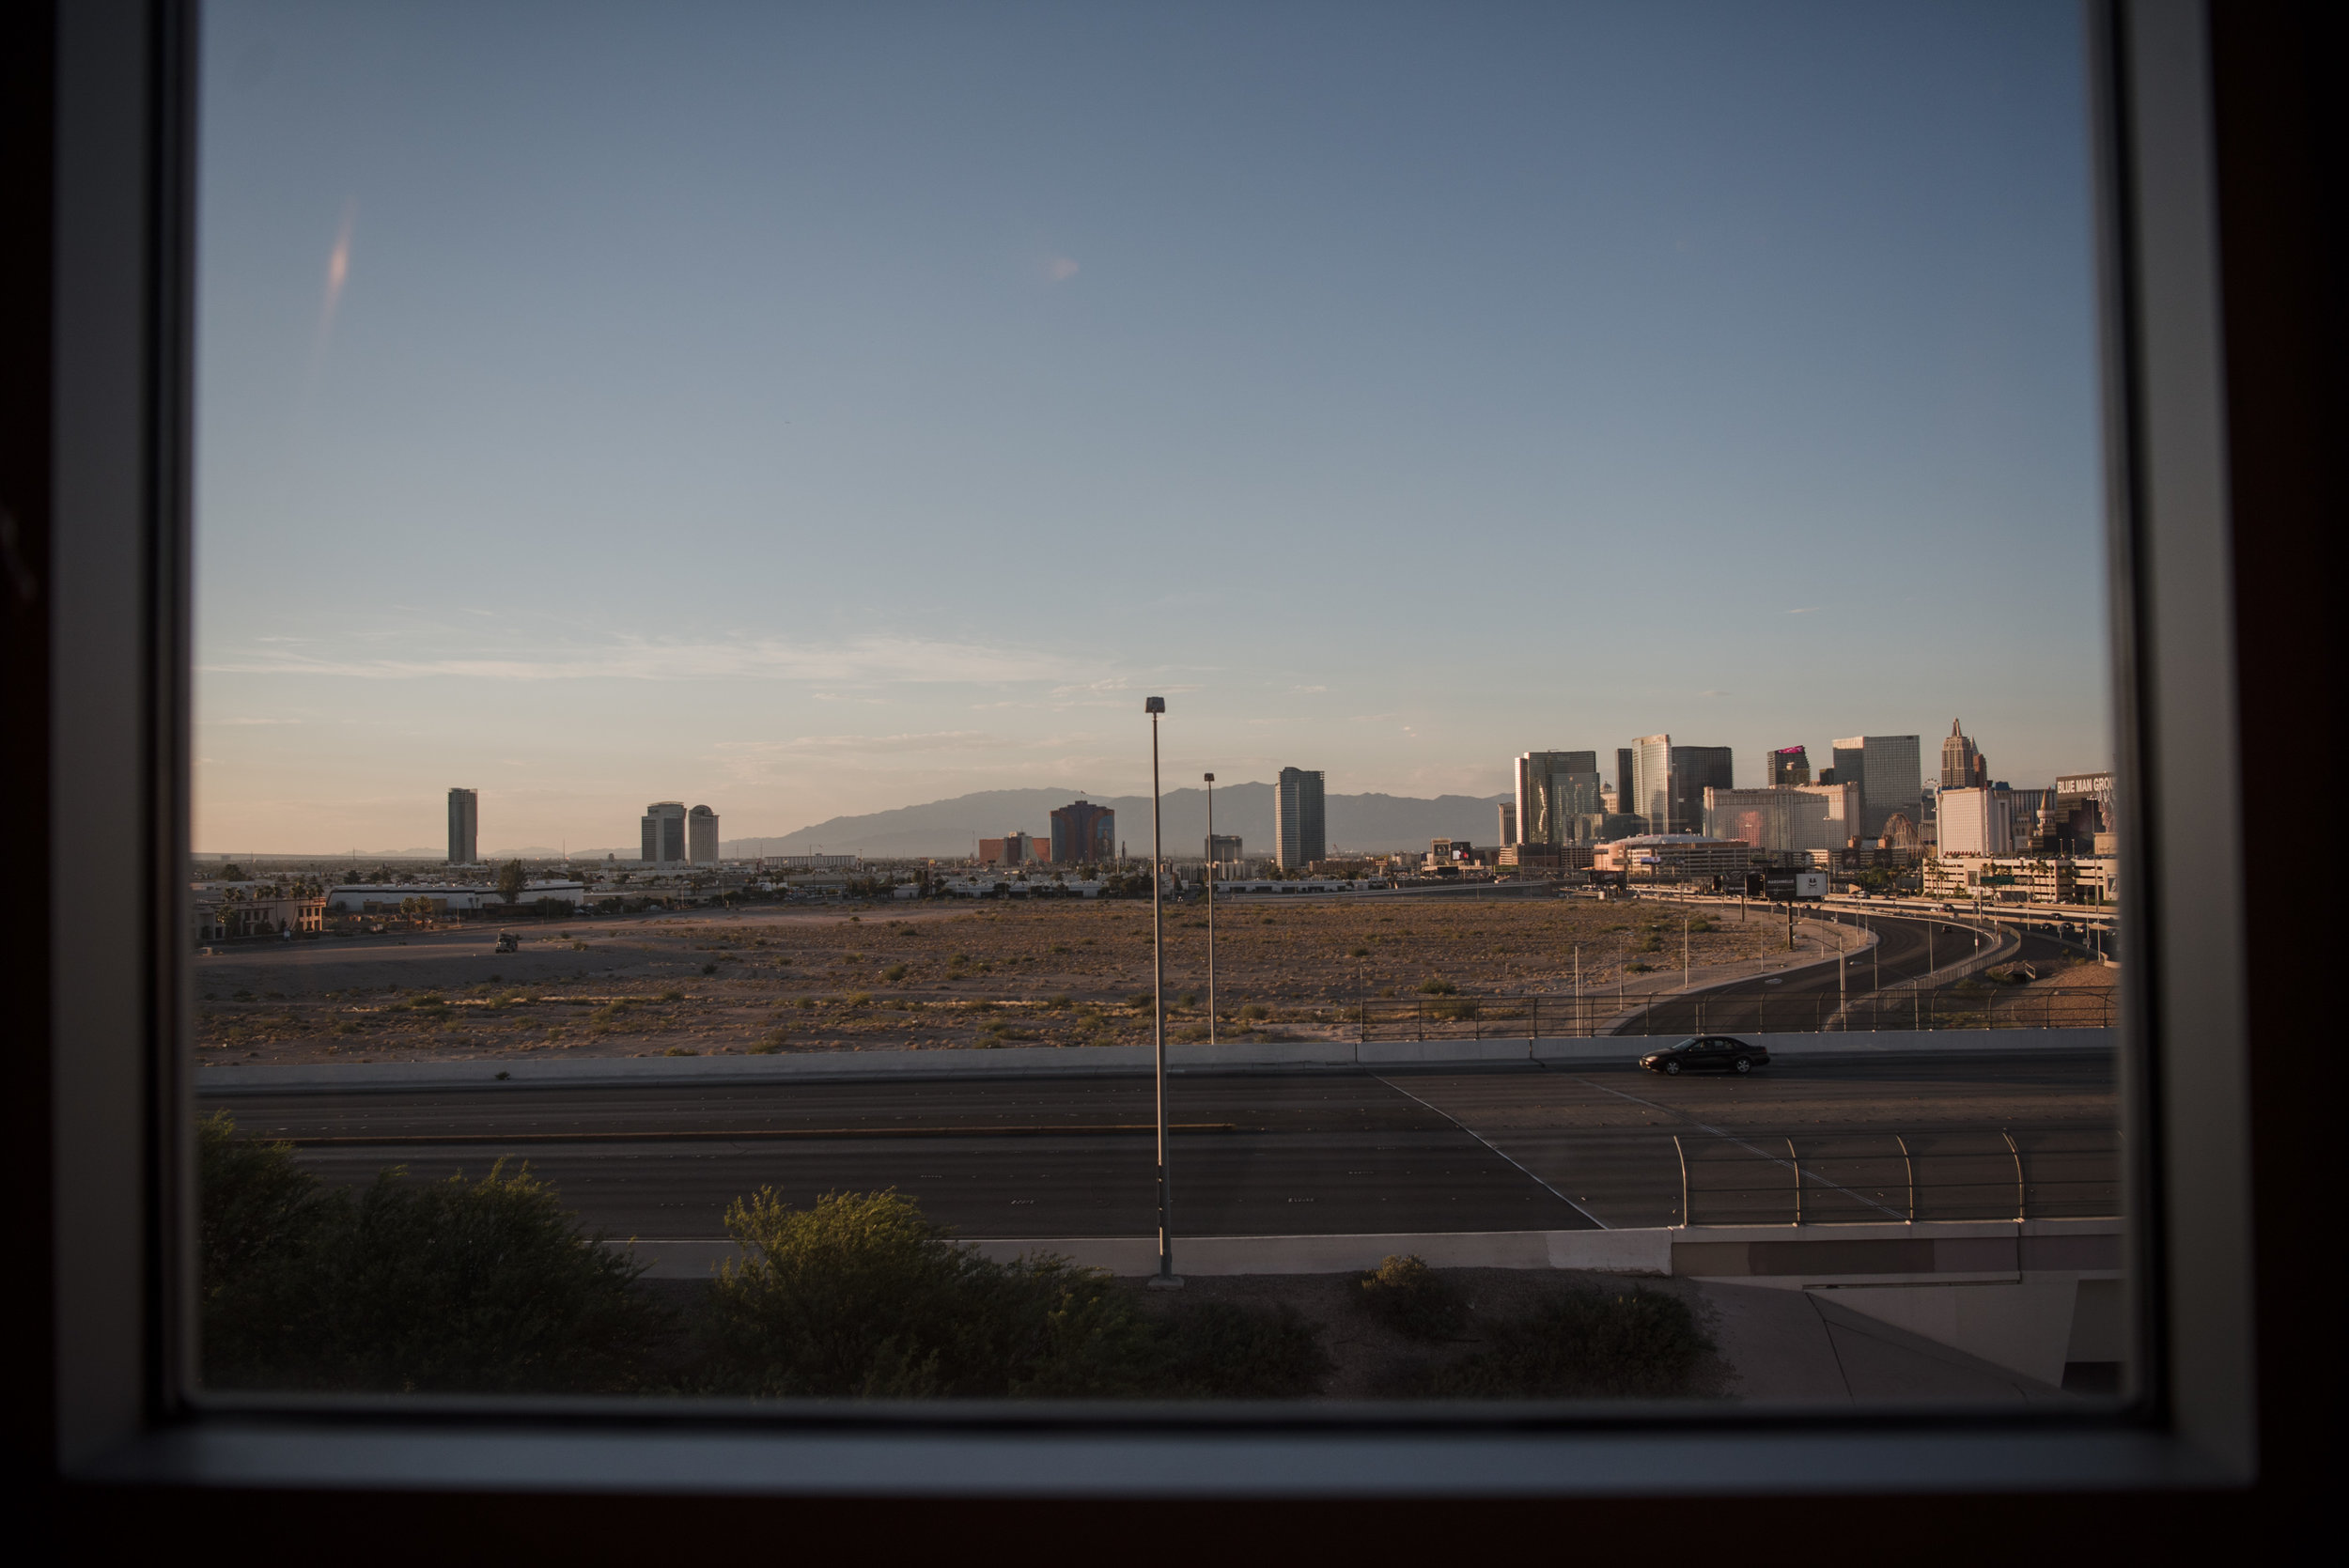 The Raiders football stadium lot, as seen facing the Las Vegas Strip from the Staybridge Suites window on Thursday, June 22, 2017, in Las Vegas. Morgan Lieberman Las Vegas Review-Journal